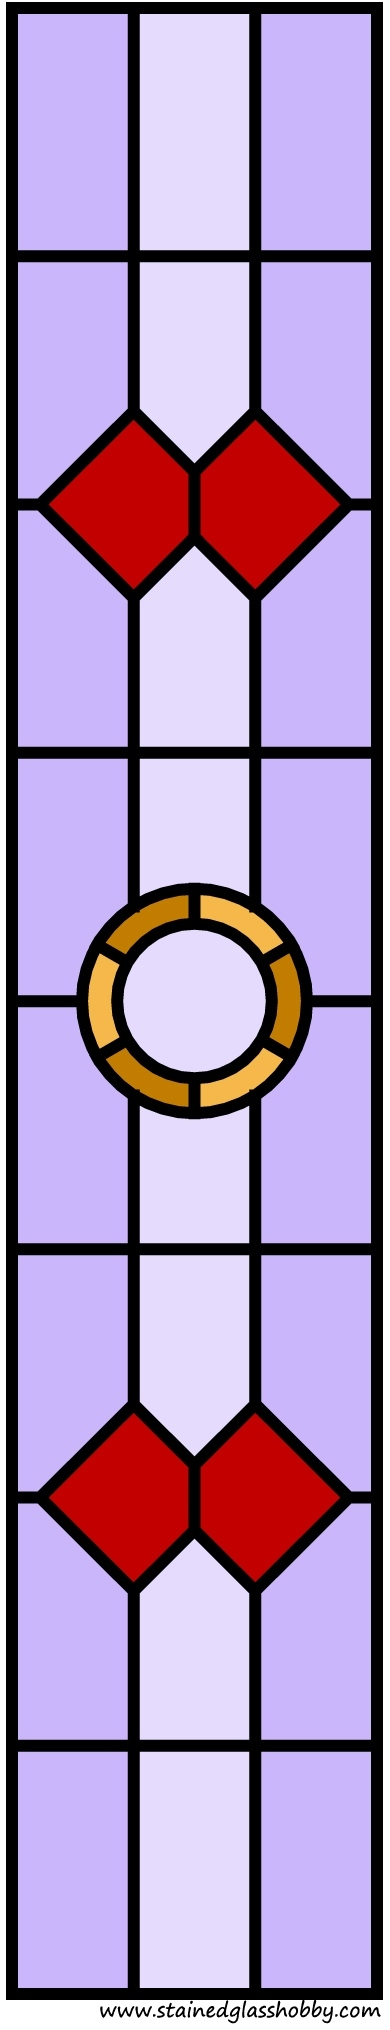 Stained glass doors free pattern